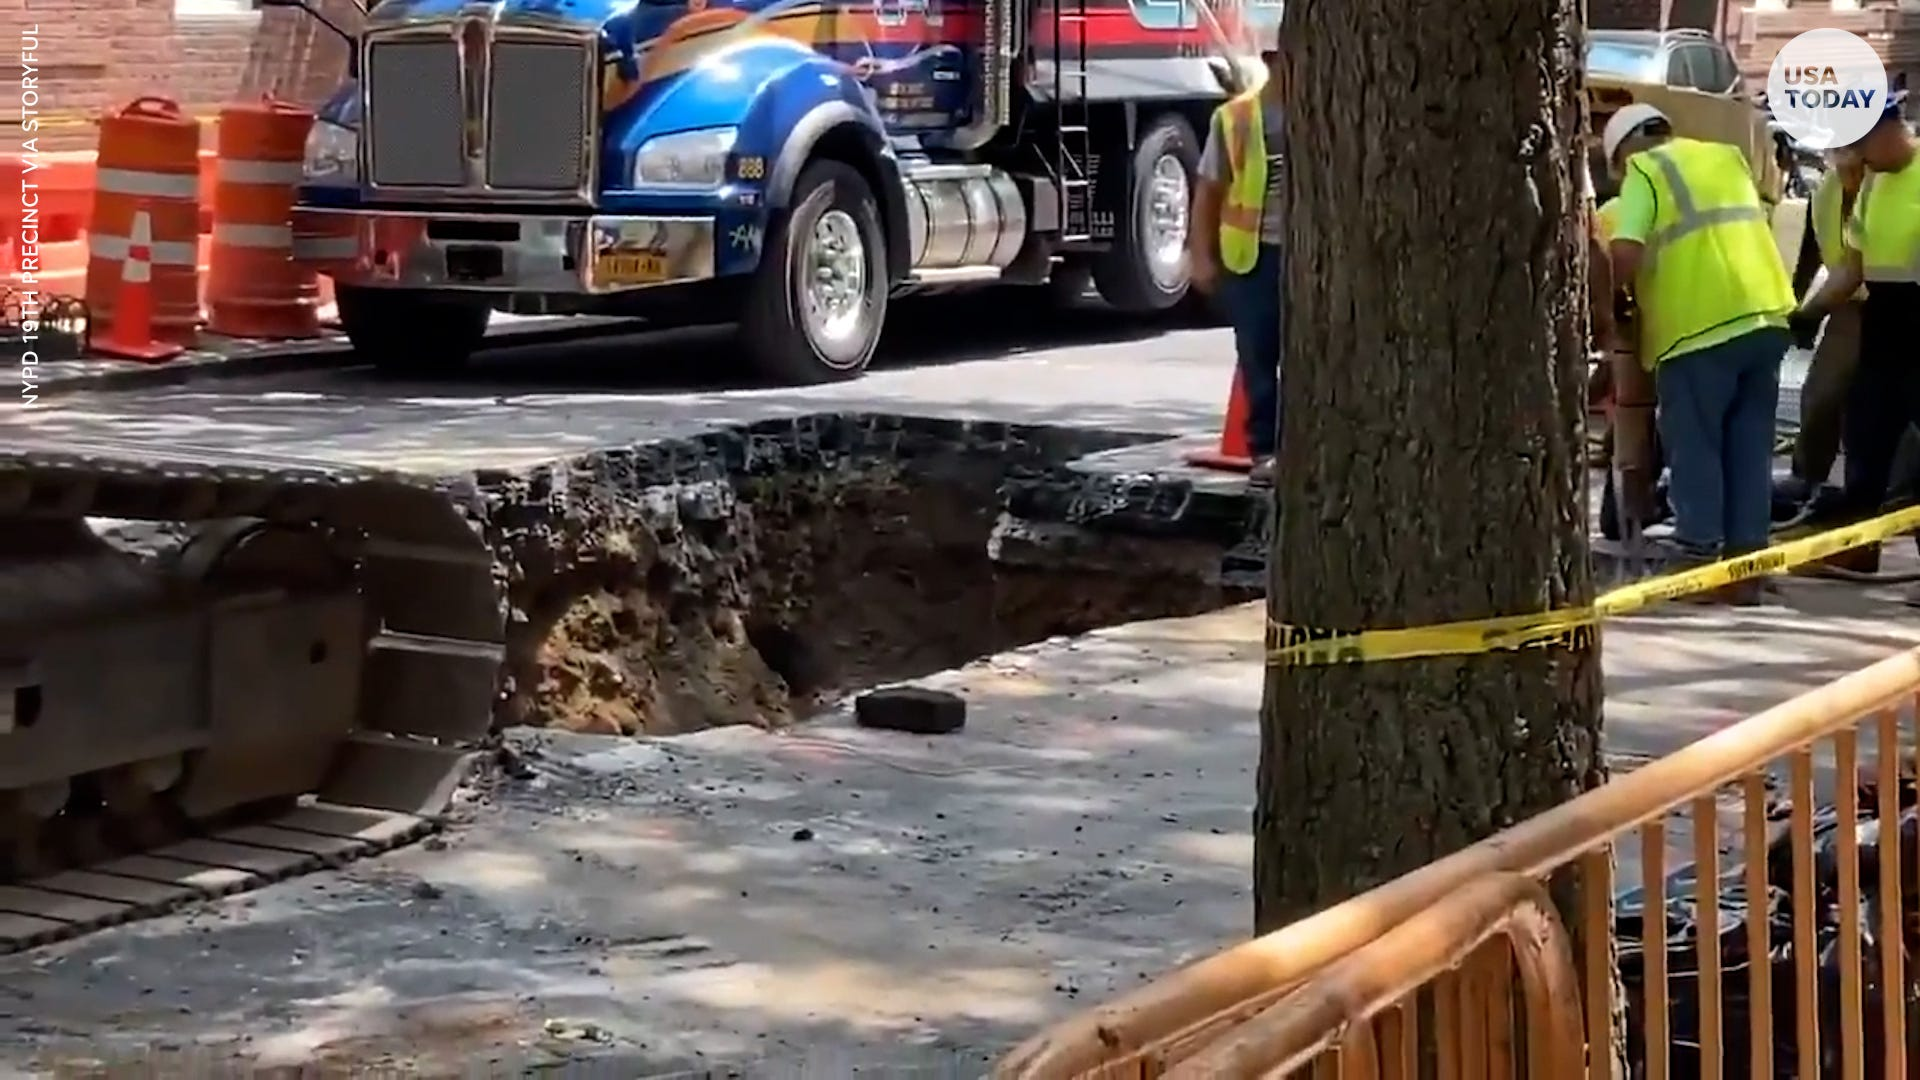 Giant sinkhole opens up in NYC, crews work to repair